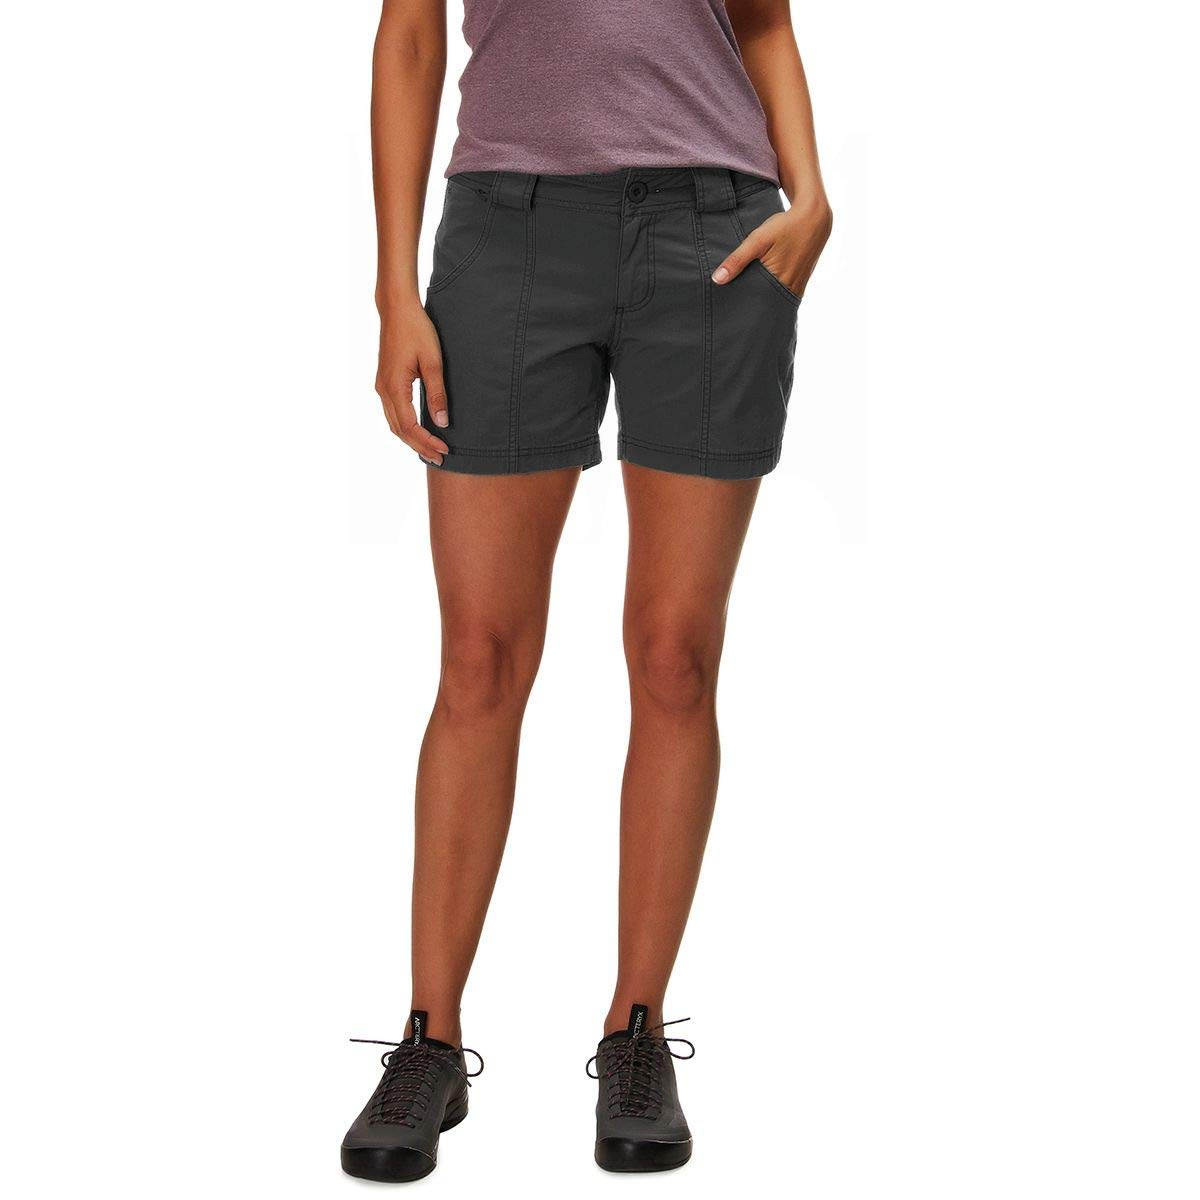 Outdoor Research Women's Wadi Rum Shorts, Charcoal, 12 by Outdoor Research